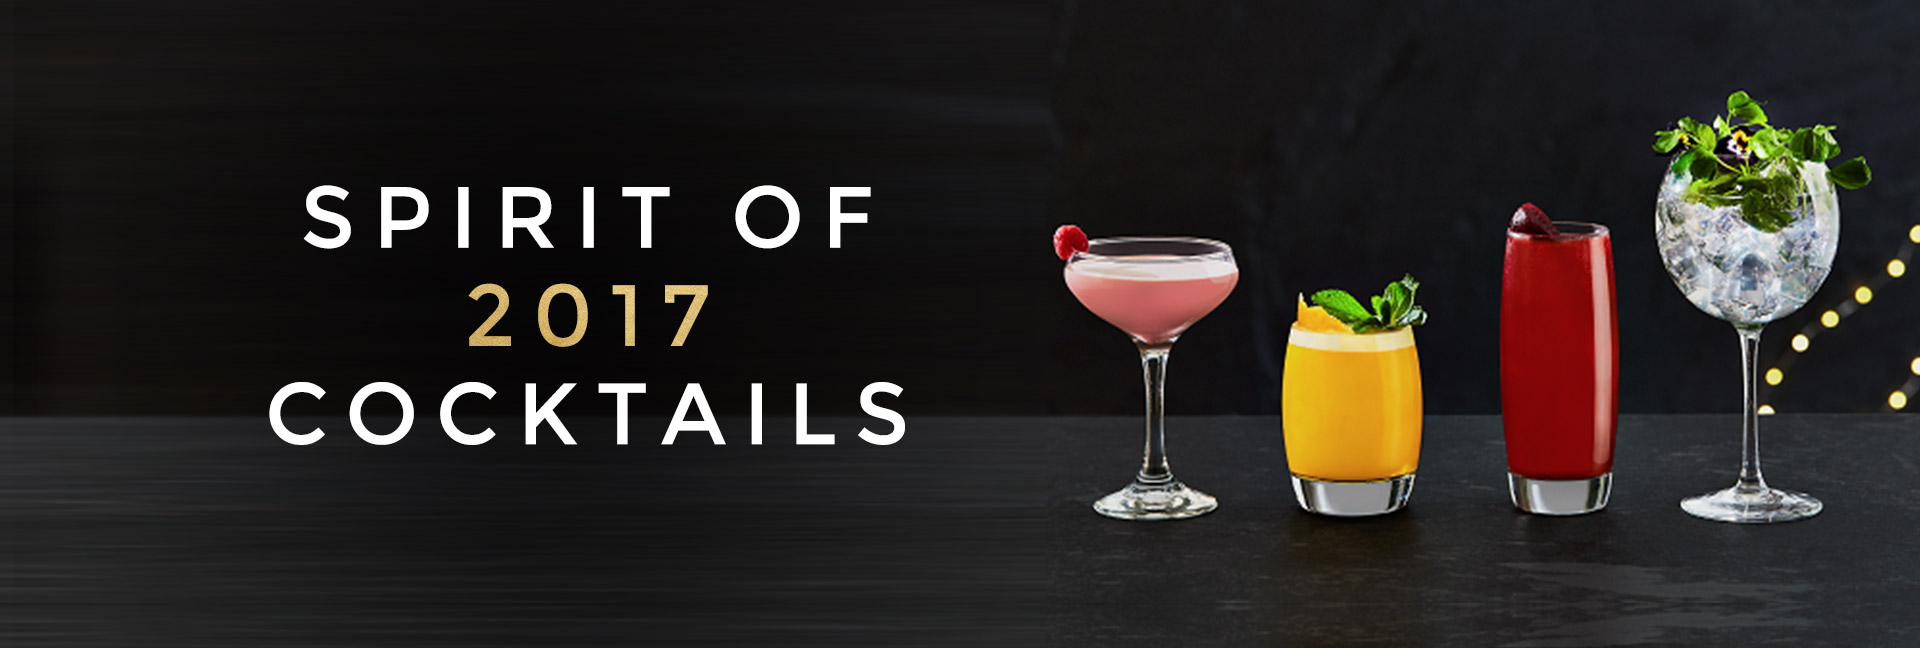 Spirit of 2017 cocktails at All Bar One Appold Street